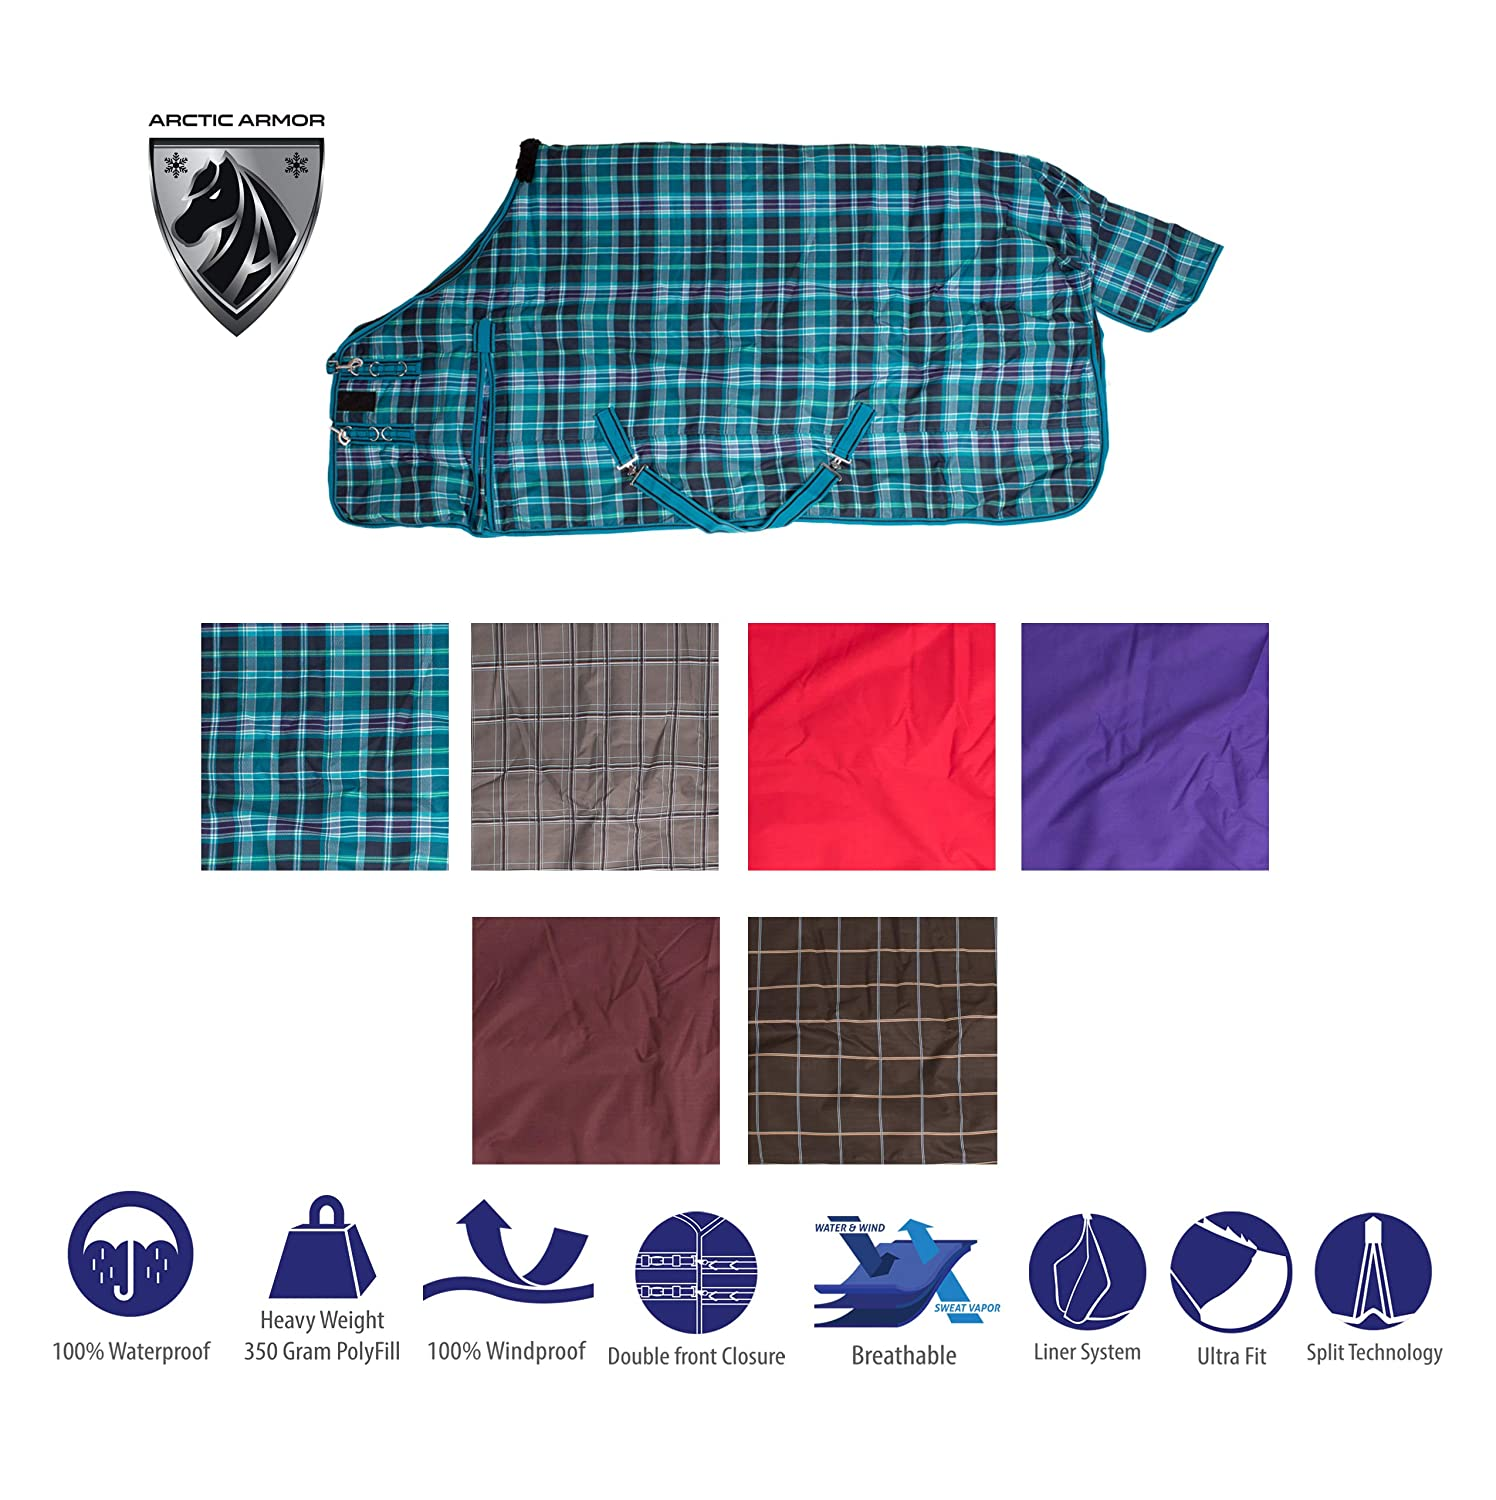 "AceRugs 70"" 72"" 74"" 76"" 78"" 80"" Heavy Weight Horse Turnout Blanket 1200D Rip Stop Water Proof Blue Plaid)"